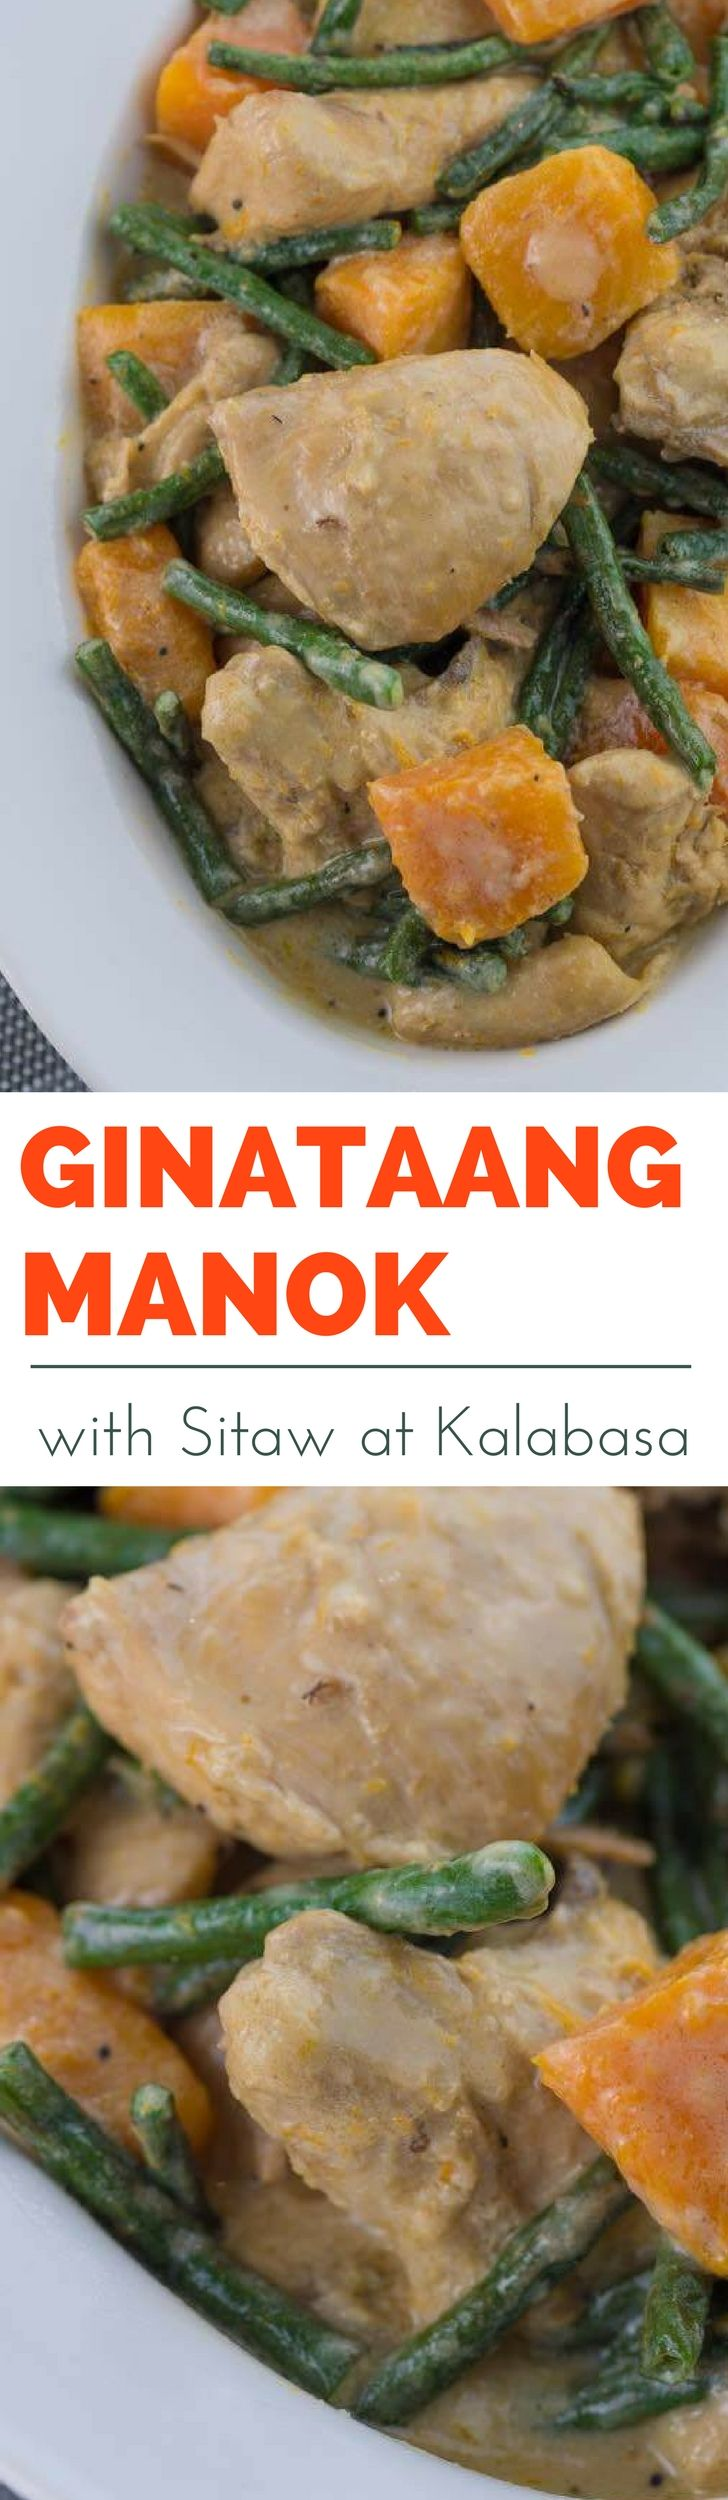 Ginataang Manok with Sitaw at Kalabasa or Chicken coooked in coconut milk with snake beans and butternut squash is an easy-to-cook Filipino chicken recipe can be a good idea for dinner. This is best served with rice. #panlasangpinoy #dinnerideas #chickenrecipes #filipinorecipes #ginataan #pinoy #filipinofood #filipino #nomom